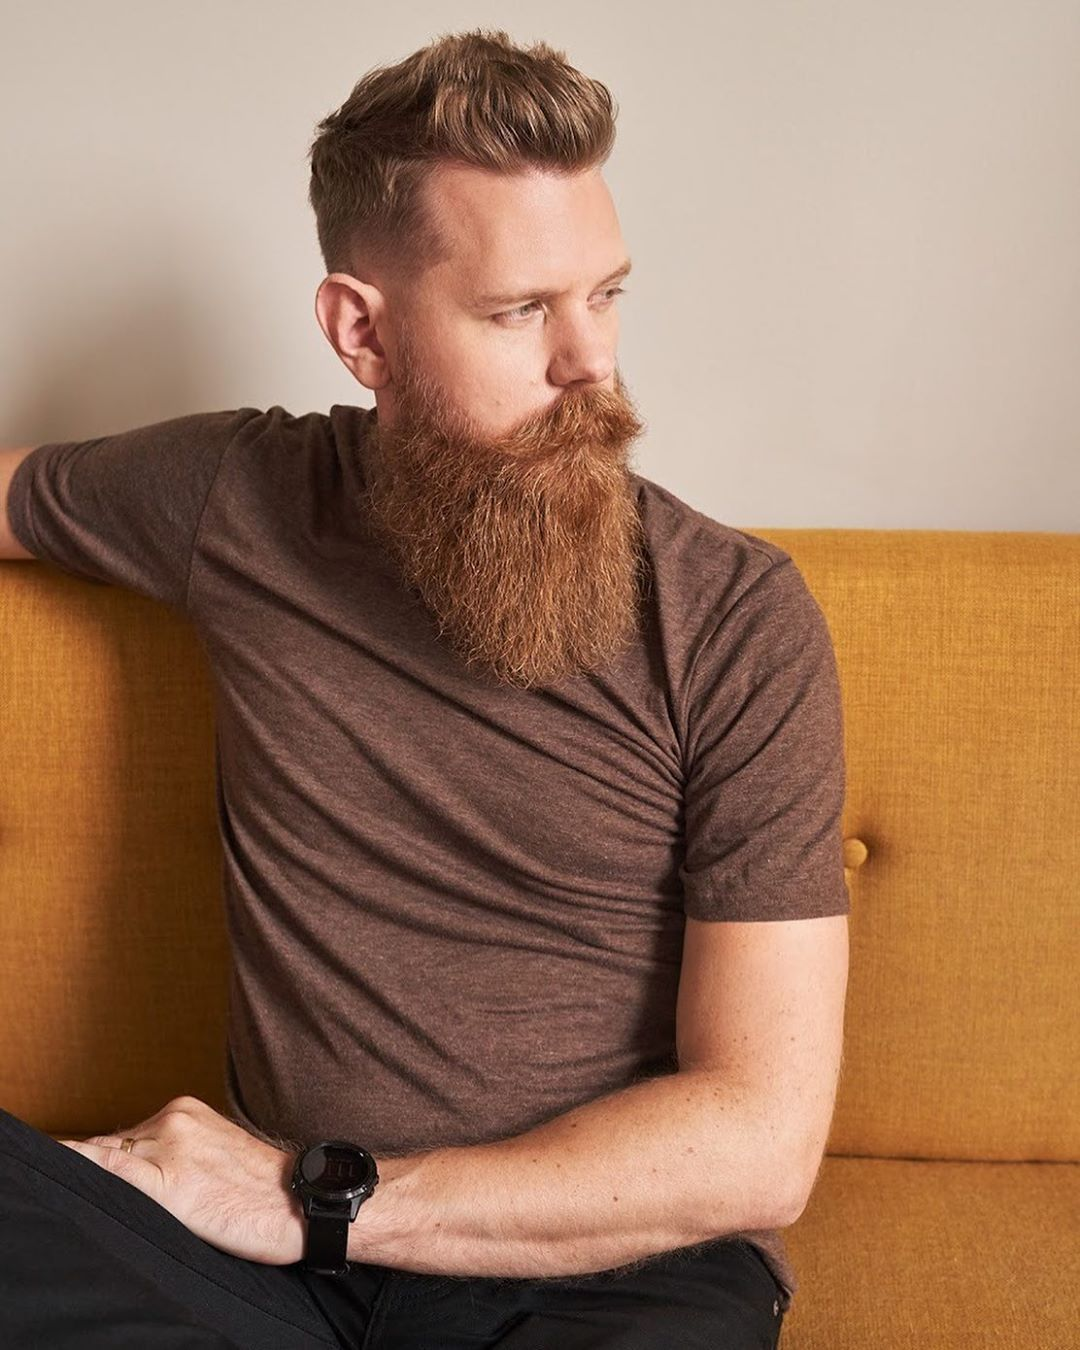 The 8 Best Hairstyles For Men With Thin Hair In 2020 The Modest Man